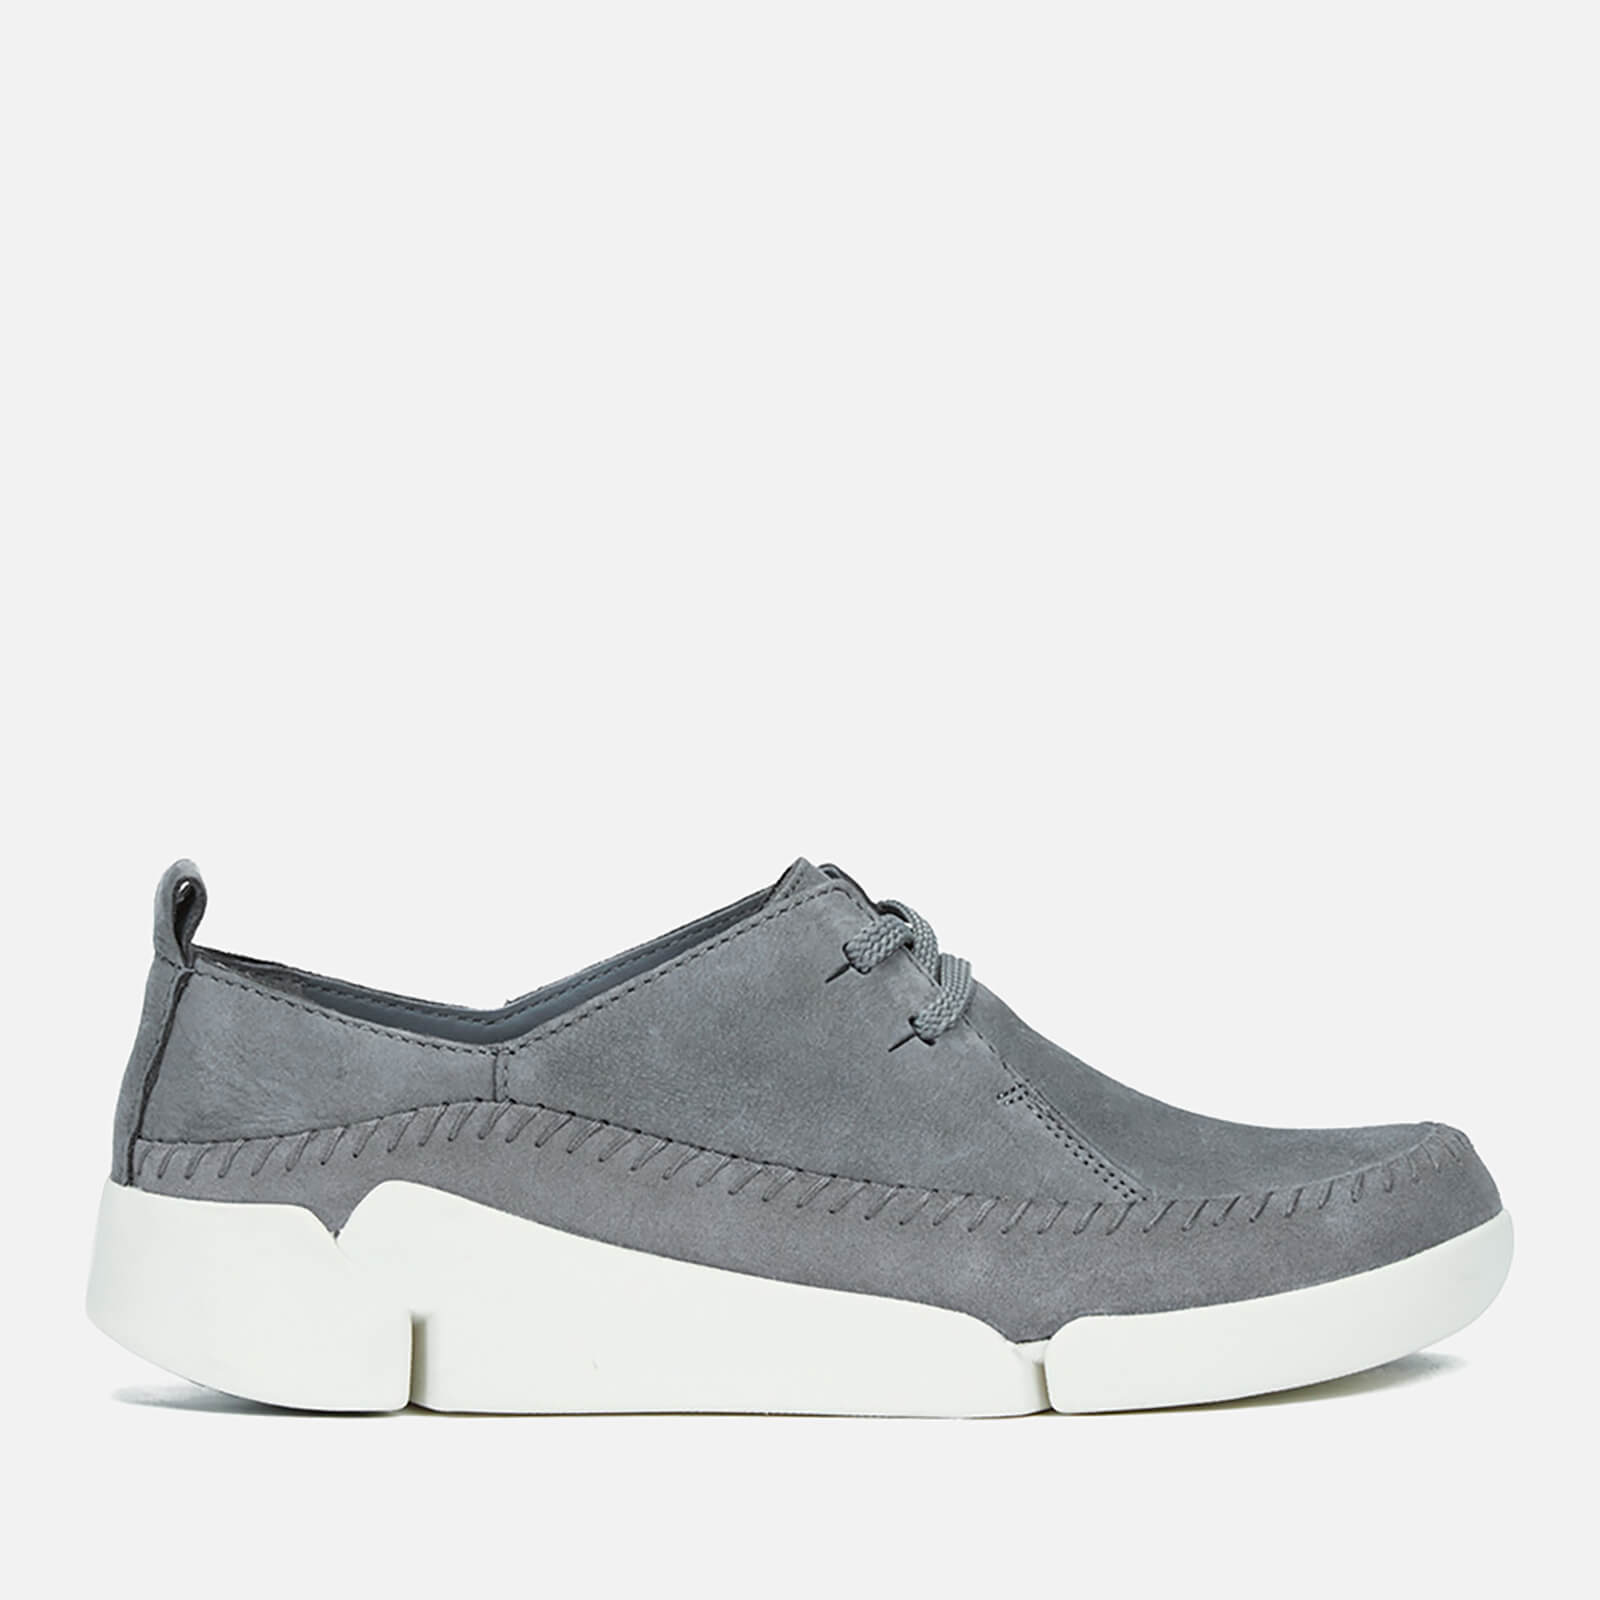 Clarks Women's Tri Angel Leather Sporty Shoes GreyBlue